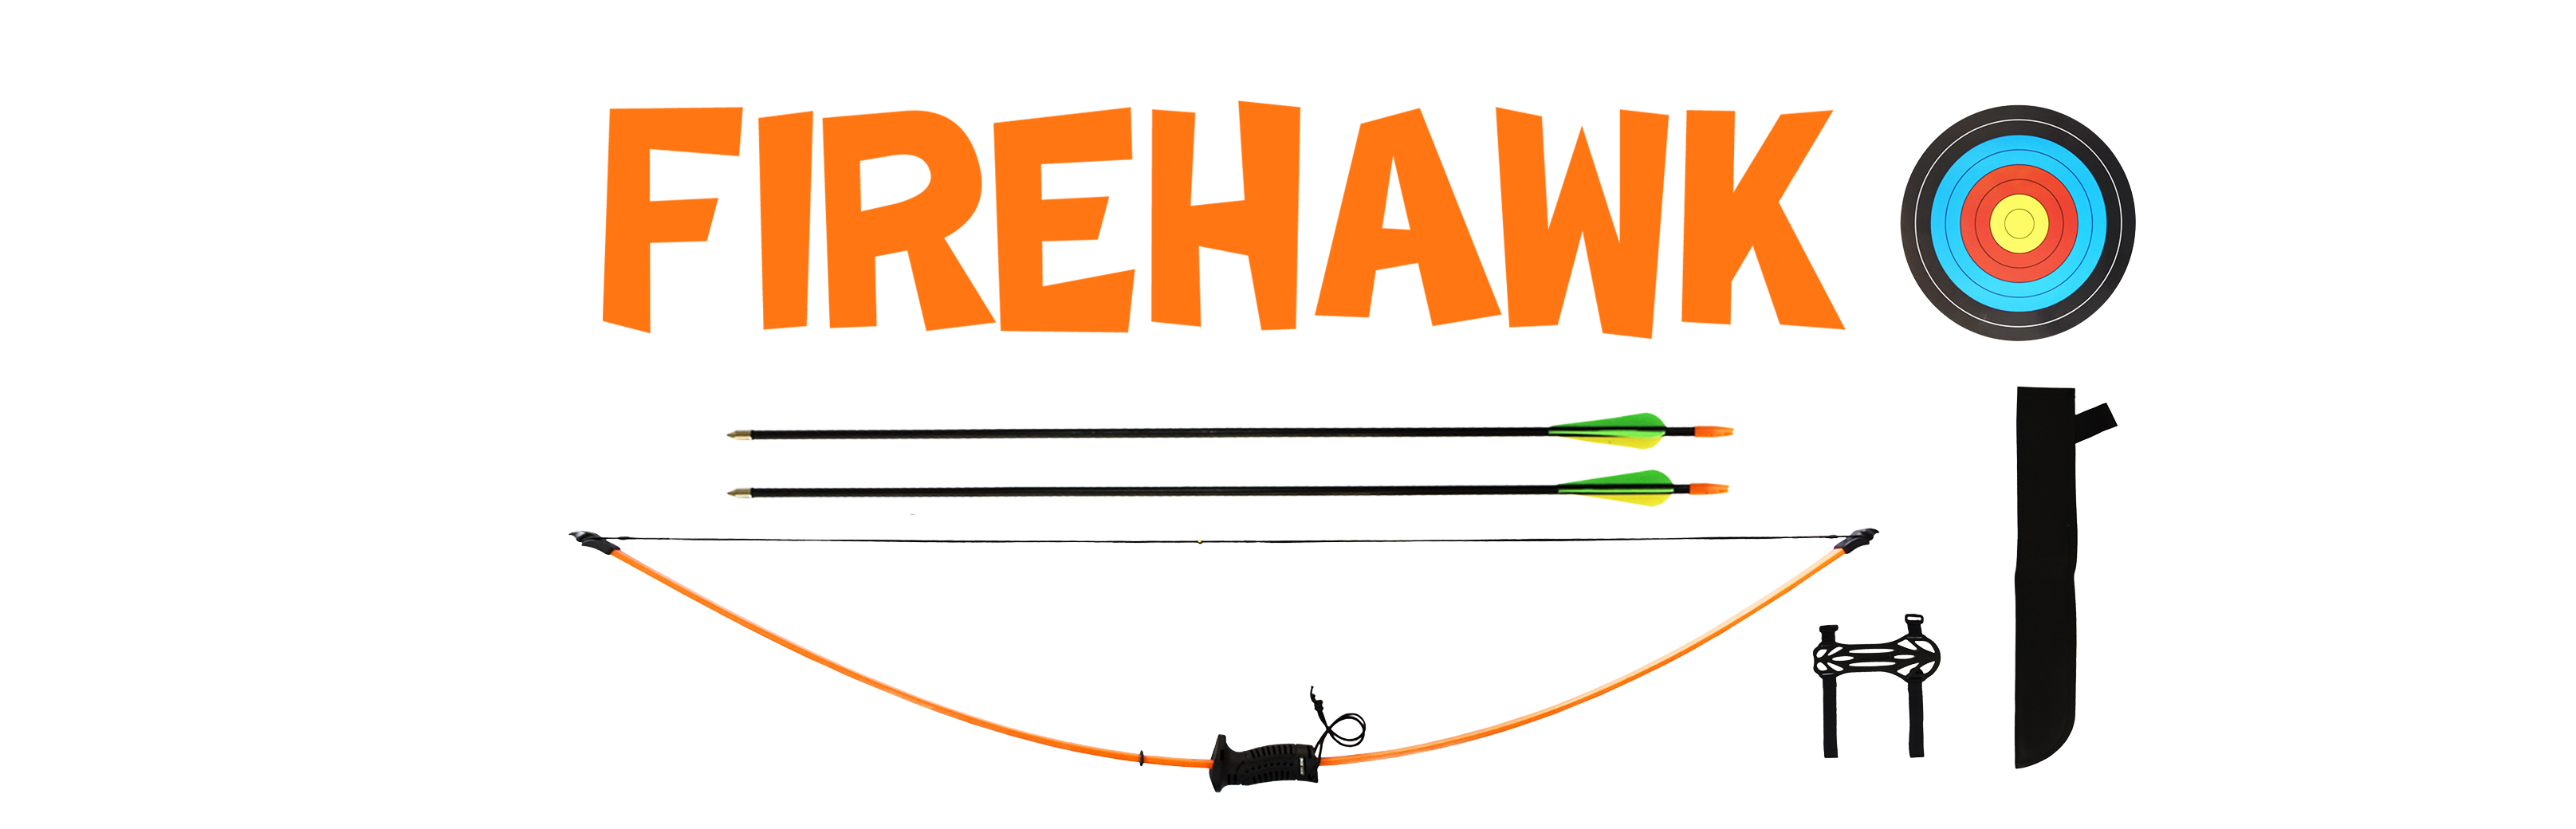 /archive/product/item/images/FIREHAWK/FIRE-HAWK-4.png